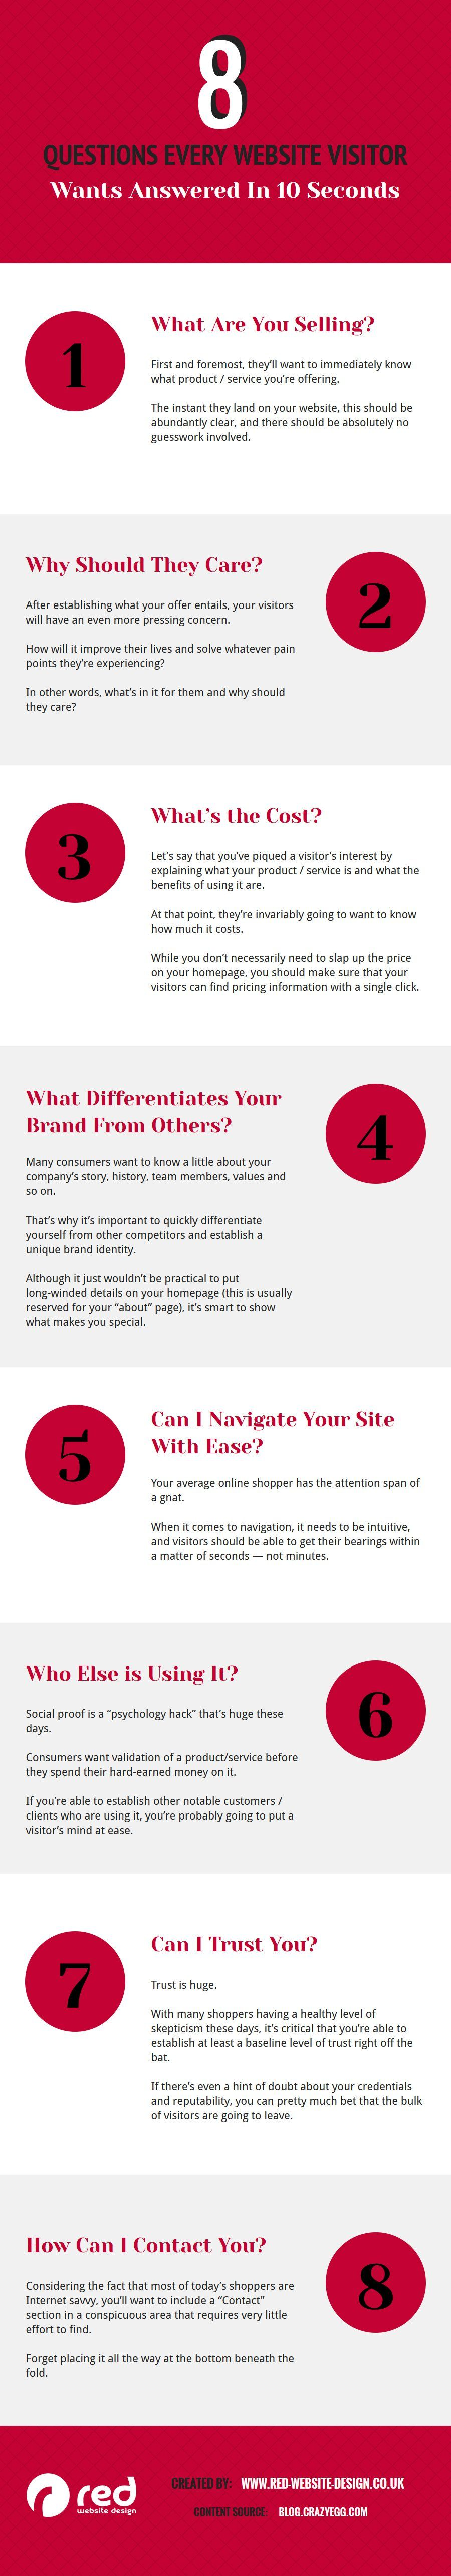 Web Design Basics: 8 Essential Questions Your Website Must Answer [Infographic] | Social Media Today